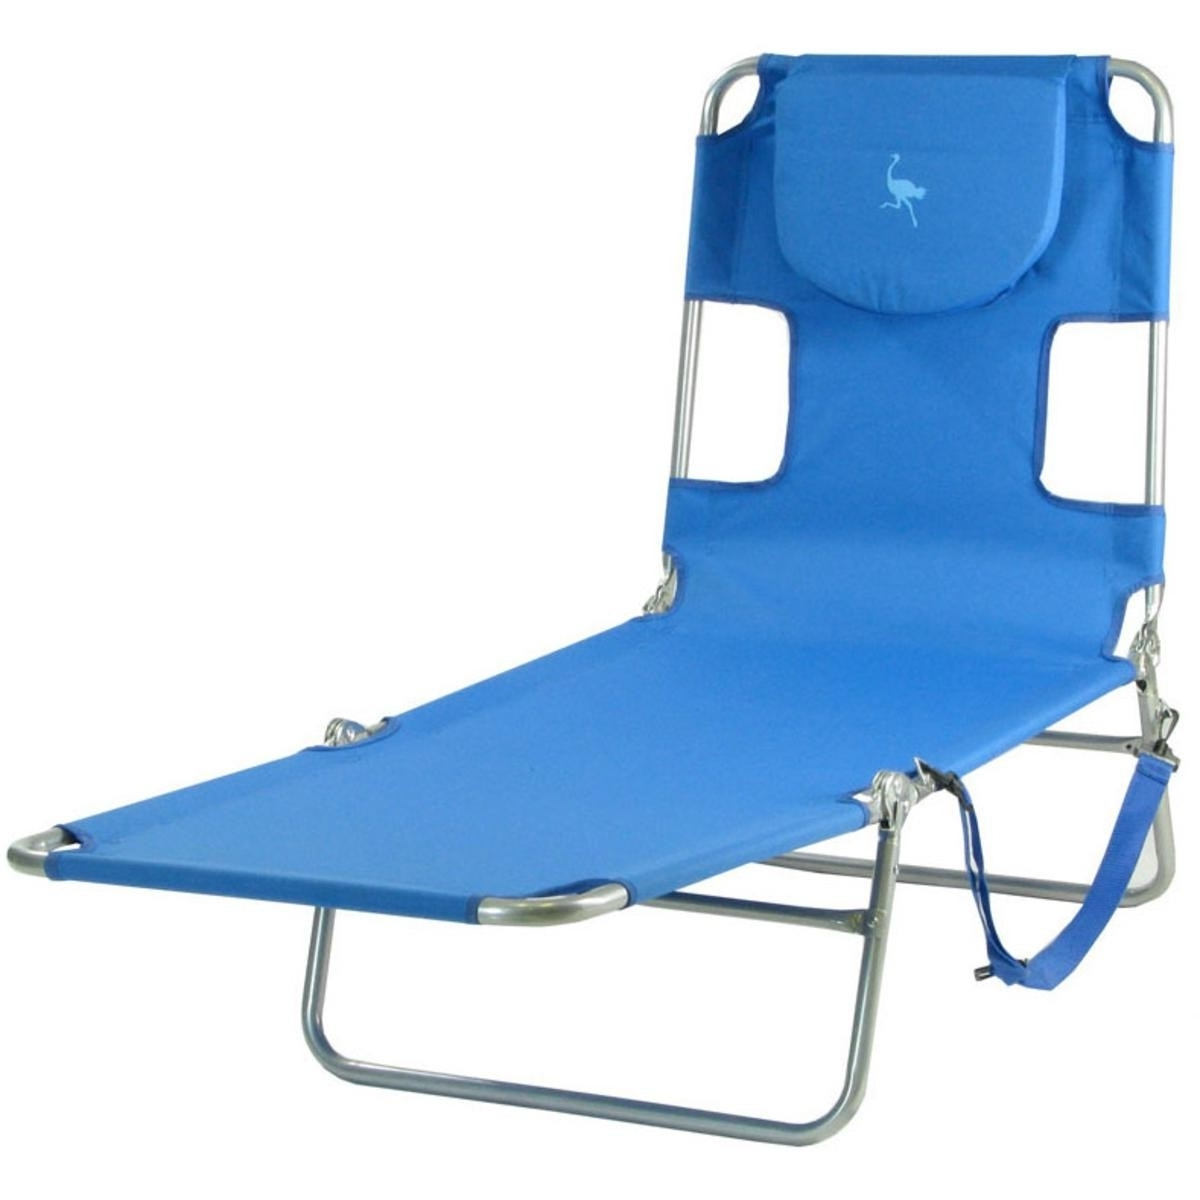 Fashionable Ostrich Mp102 Folding Beach Chaise Lounge Ocean Blue In Beach Chaise Lounge Chairs (View 9 of 15)